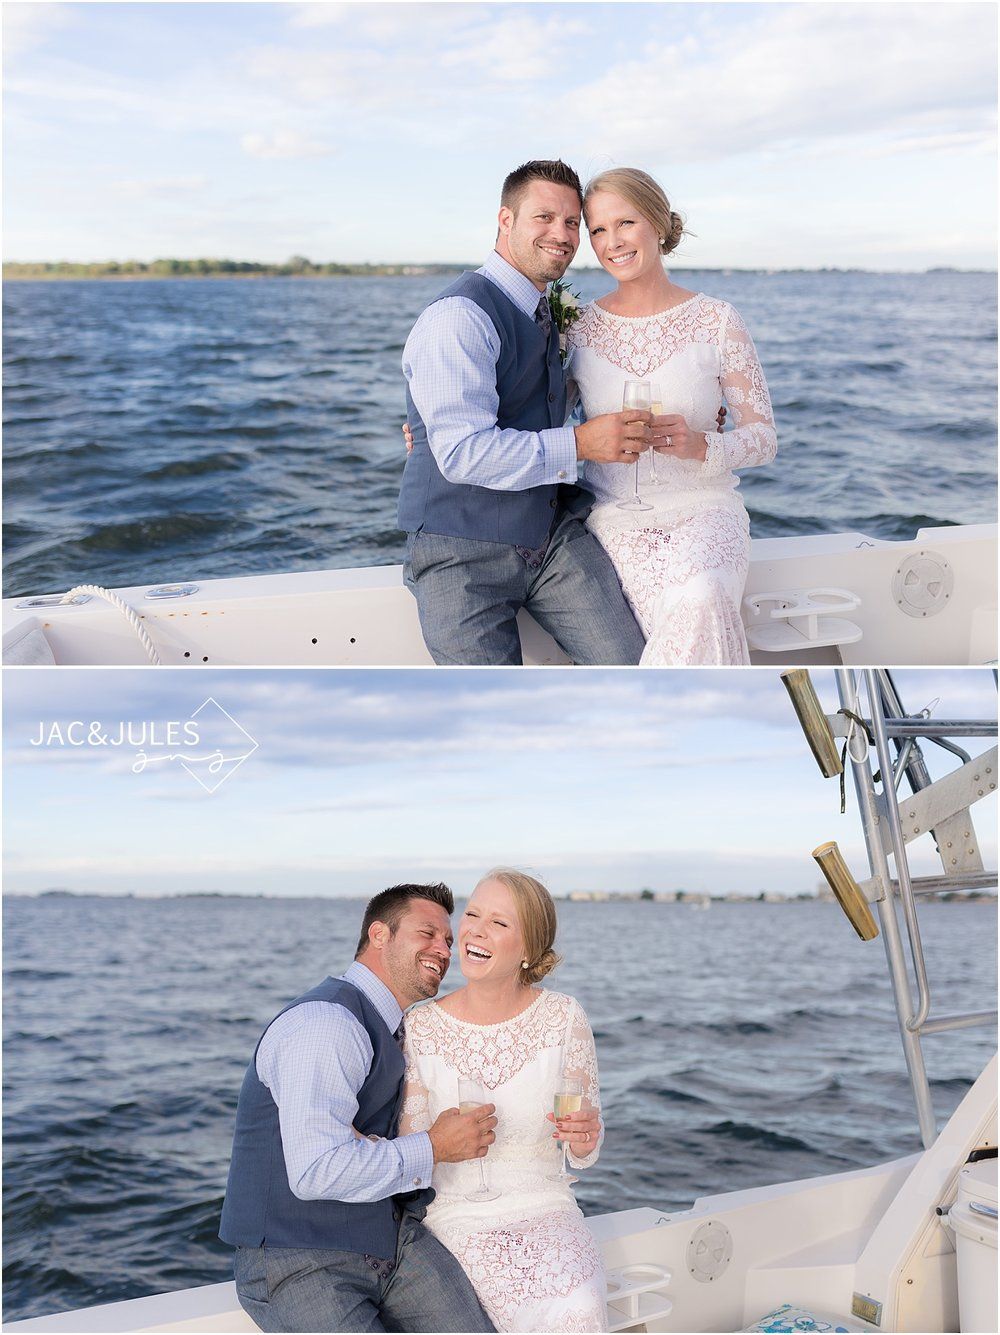 champagne toast for bride and groom on a boat in shrewsbury nj